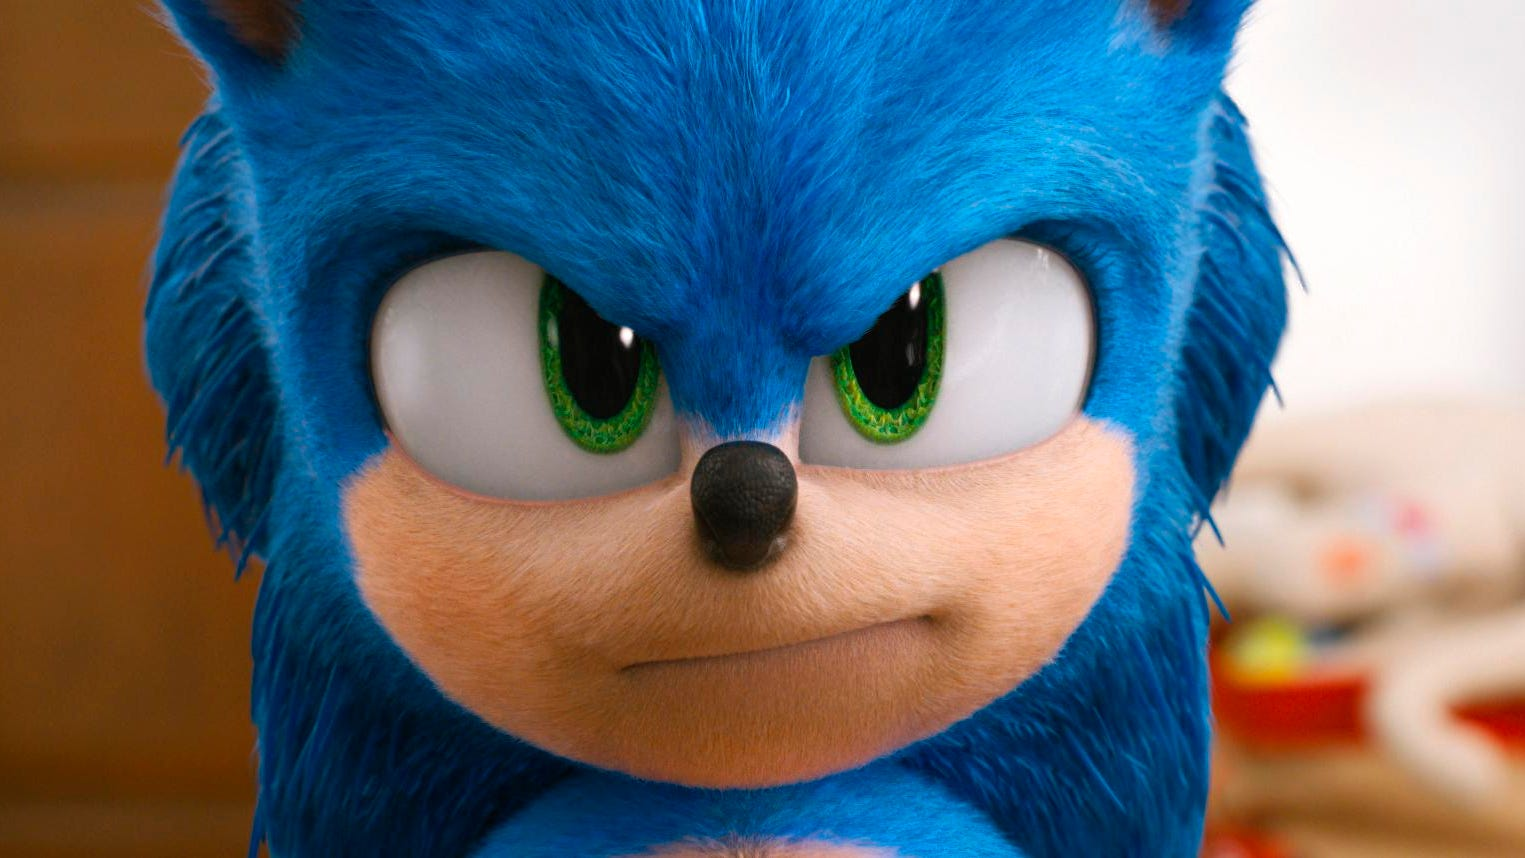 Not So Super Sonic The Hedgehog Runs Out Of Steam Early